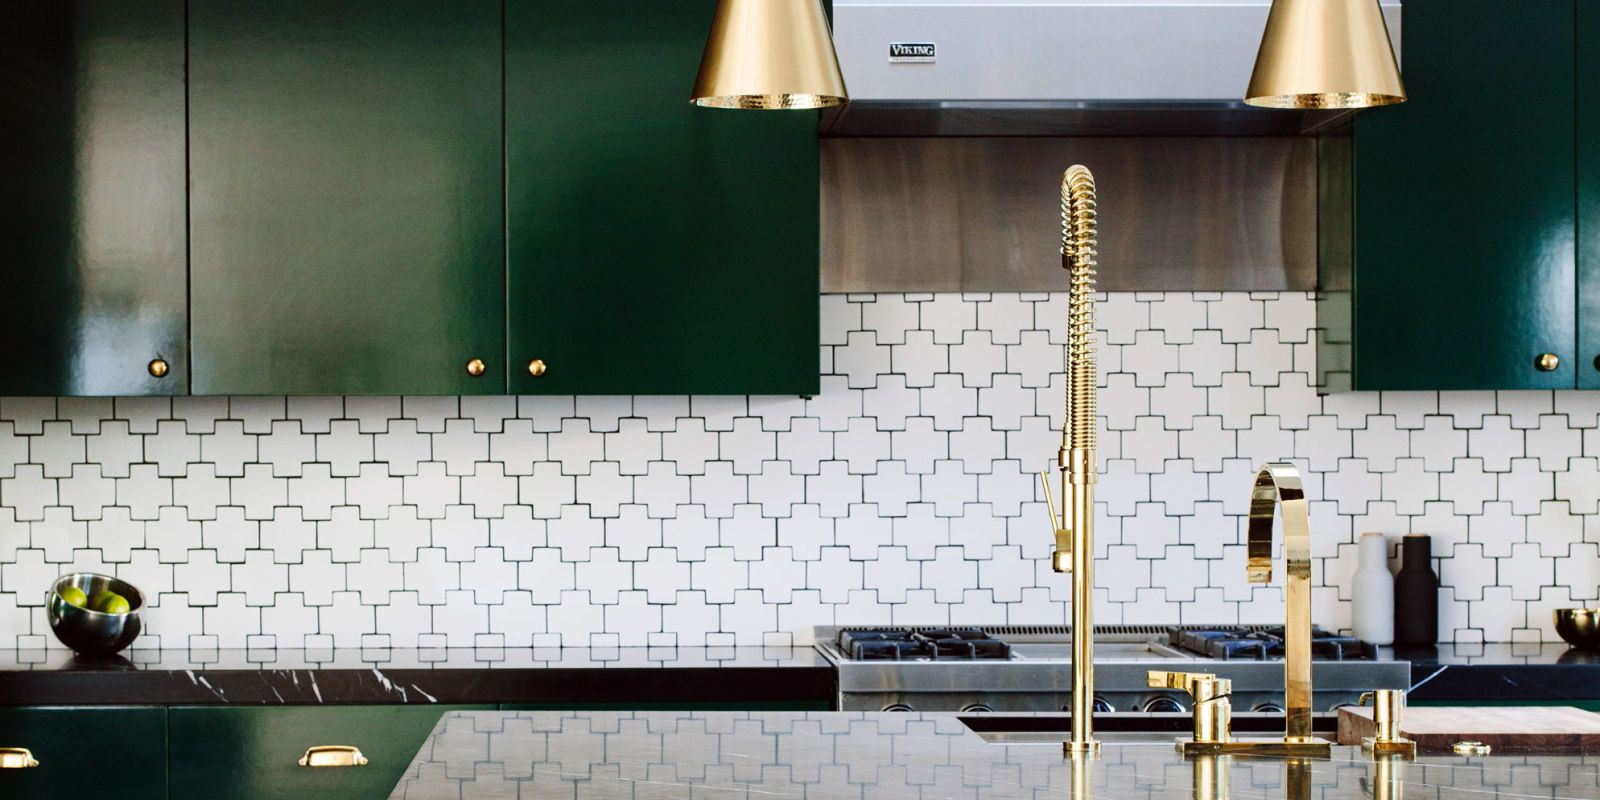 Designing Your Kitchen Is Much More Than Just Choosing Appliances,  Cabinets, And A Countertop. Steal These Spot On Designer Tips To Inject  More Personality ...